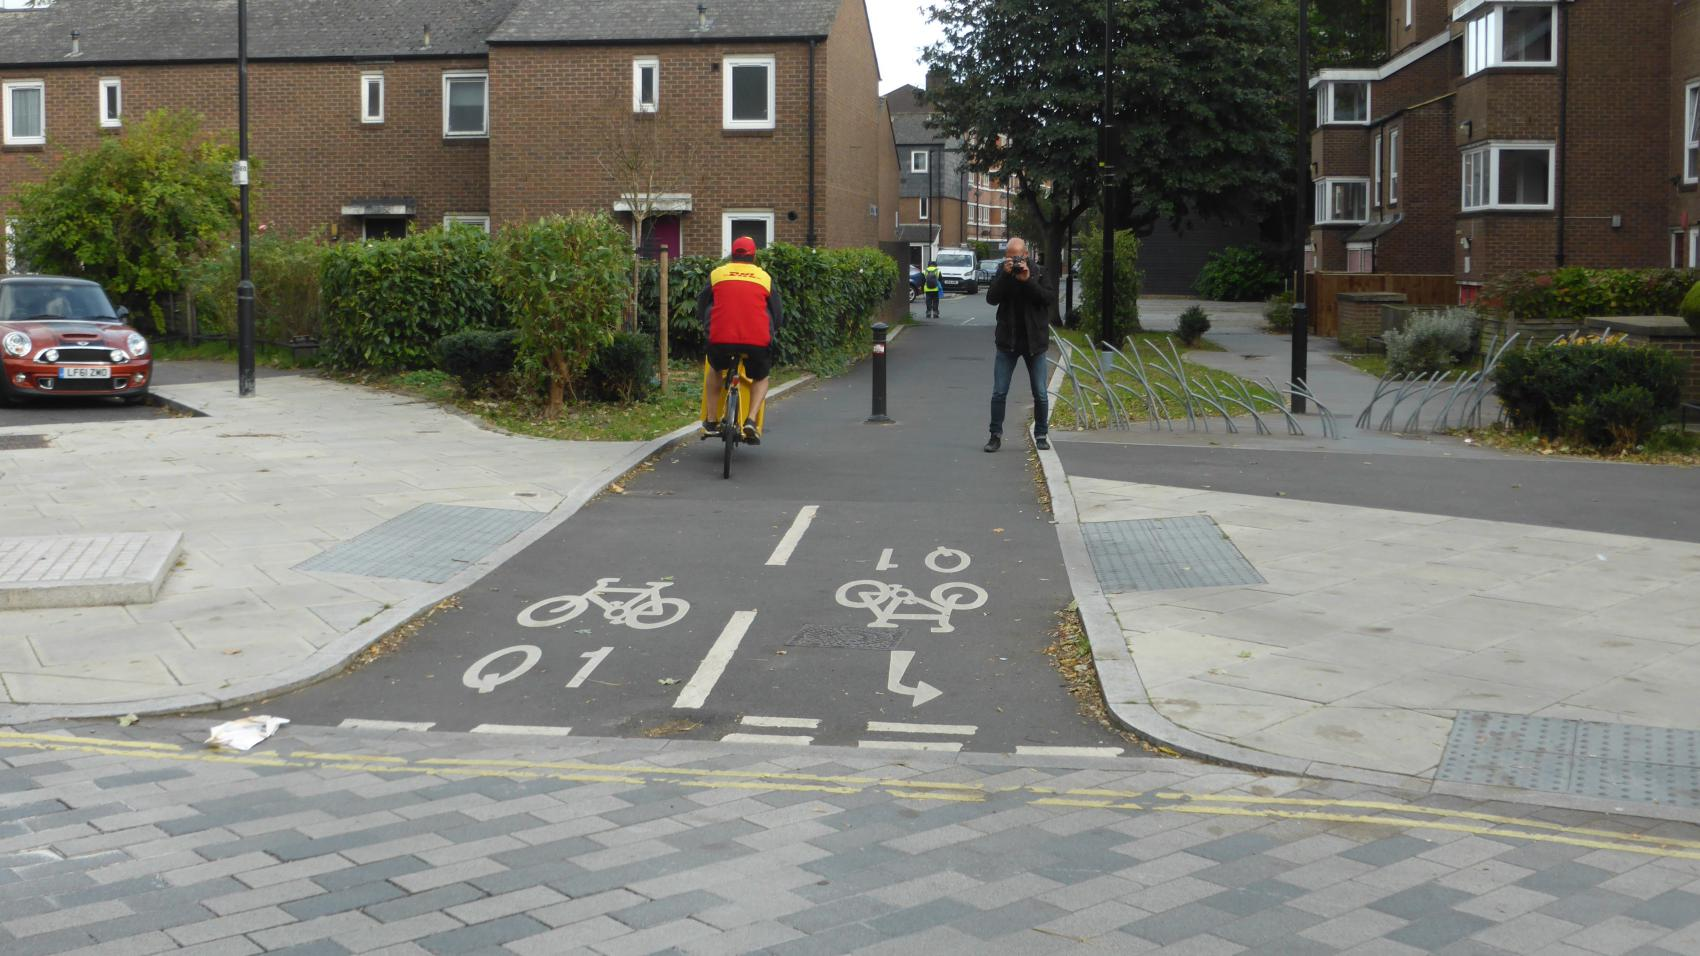 Quietway 1: Rothsay Street is a dead end for cars, but a cycling path connects it to the crossing of Law and Weston St.